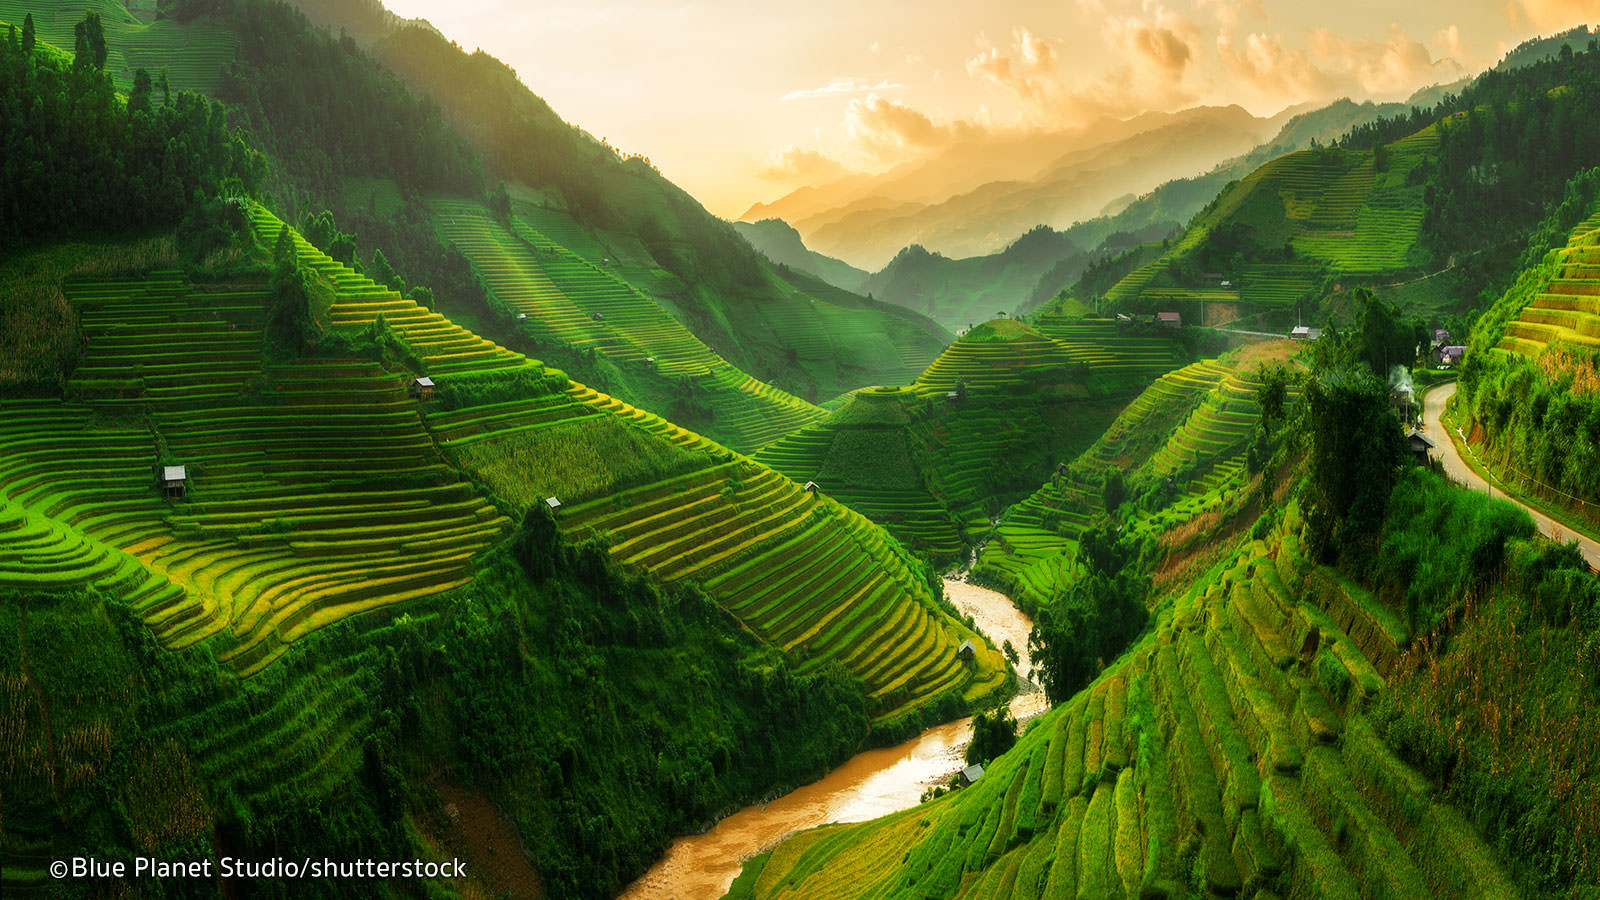 The tiered rice terraces in Sapa